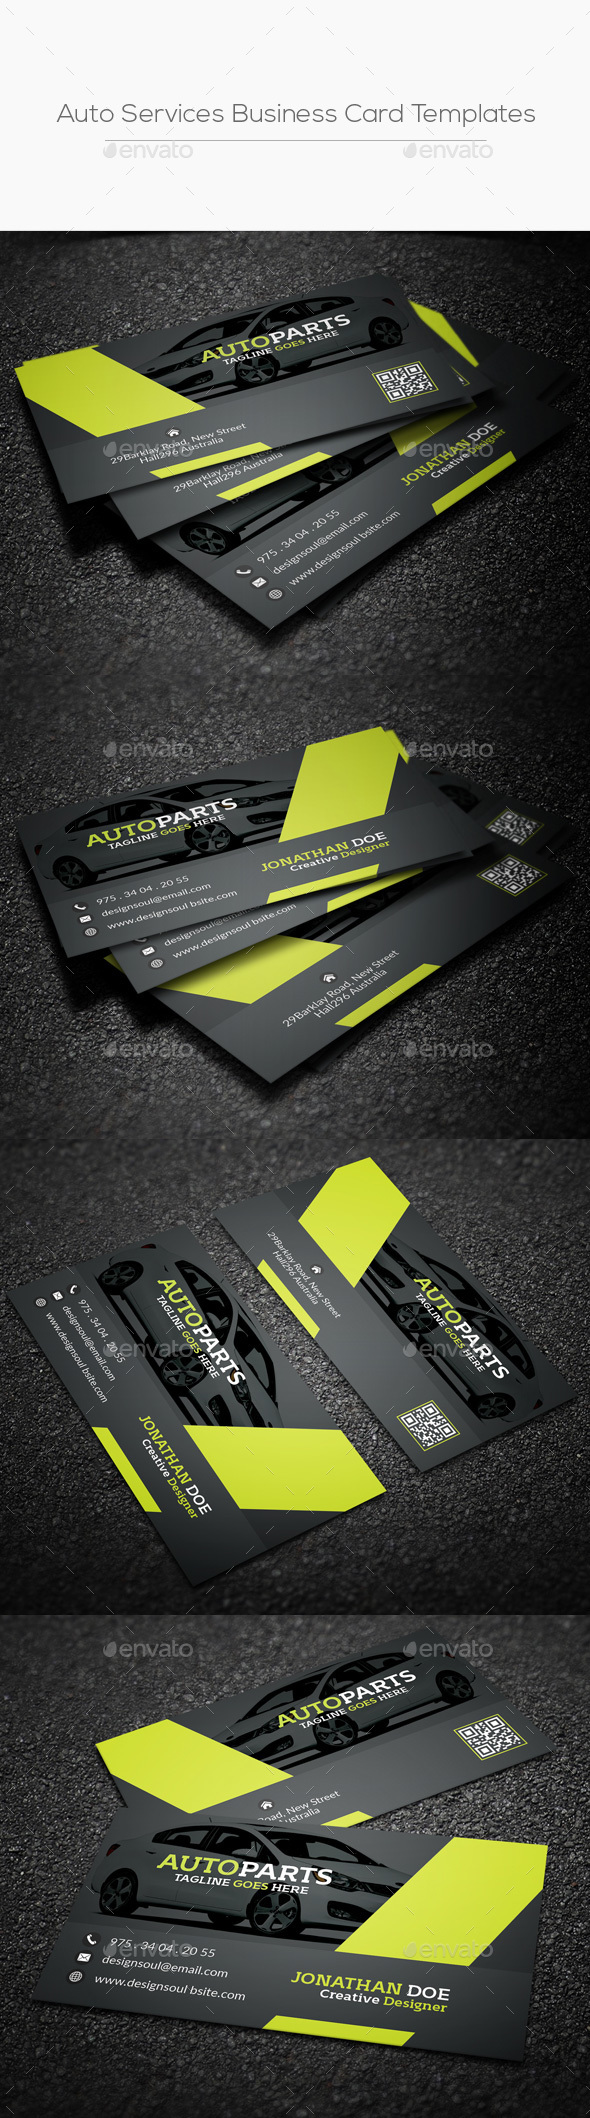 Auto Services Business Card Templates by designsoul14 | GraphicRiver